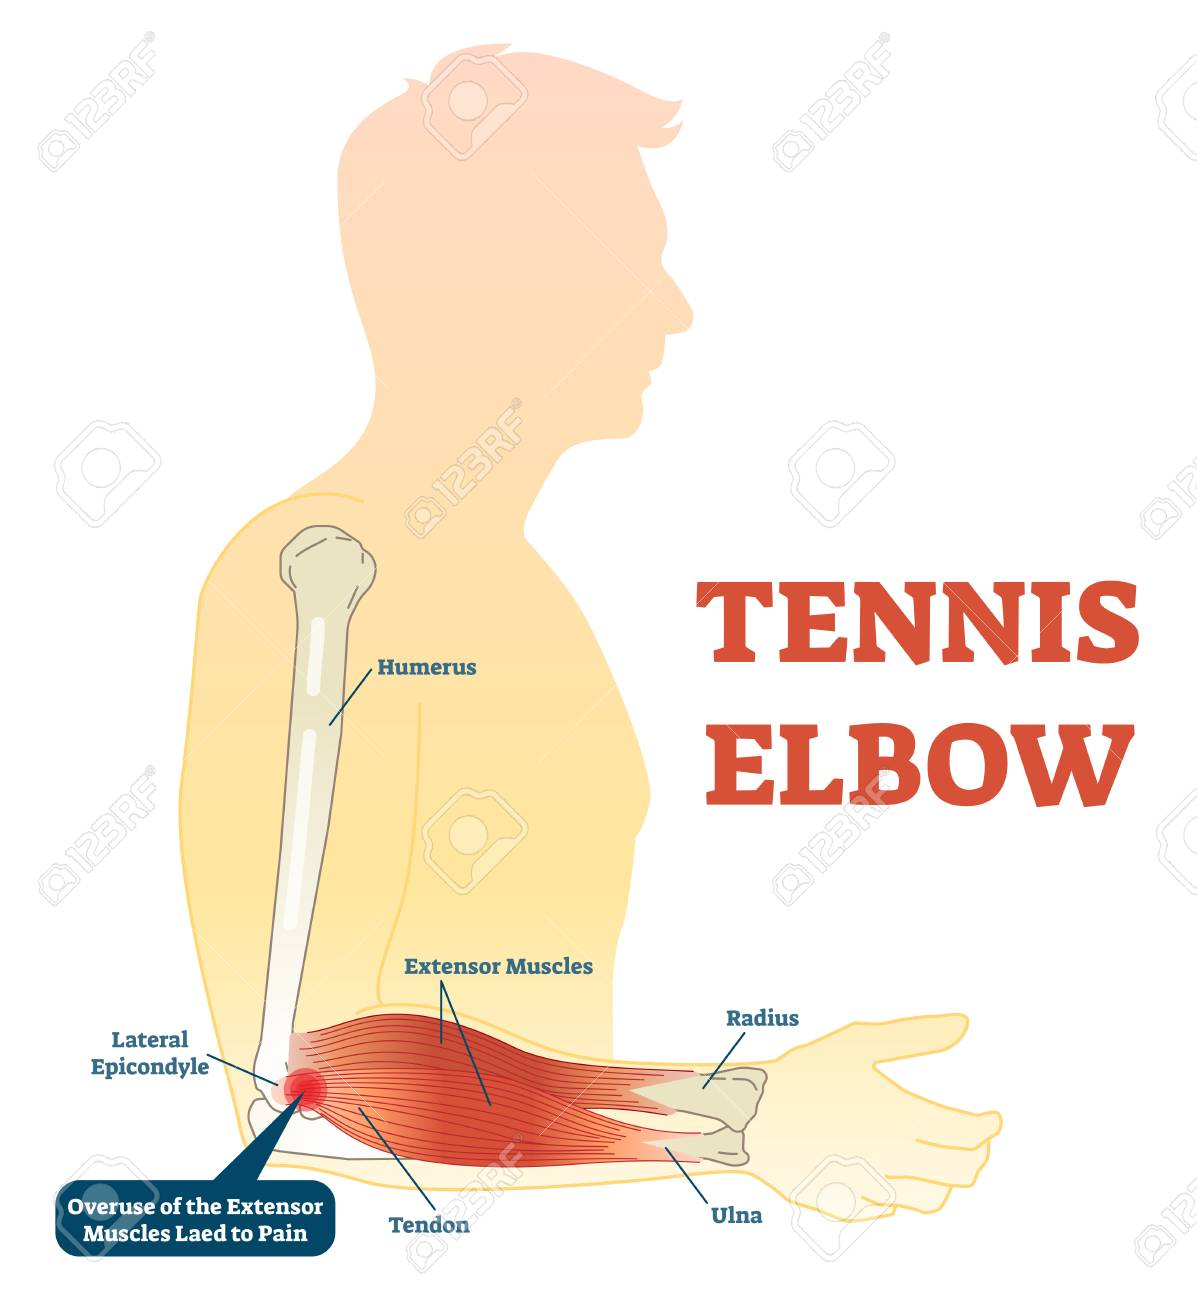 Tennis Elbow Medical Fitness Anatomy Vector Illustration Diagram ...